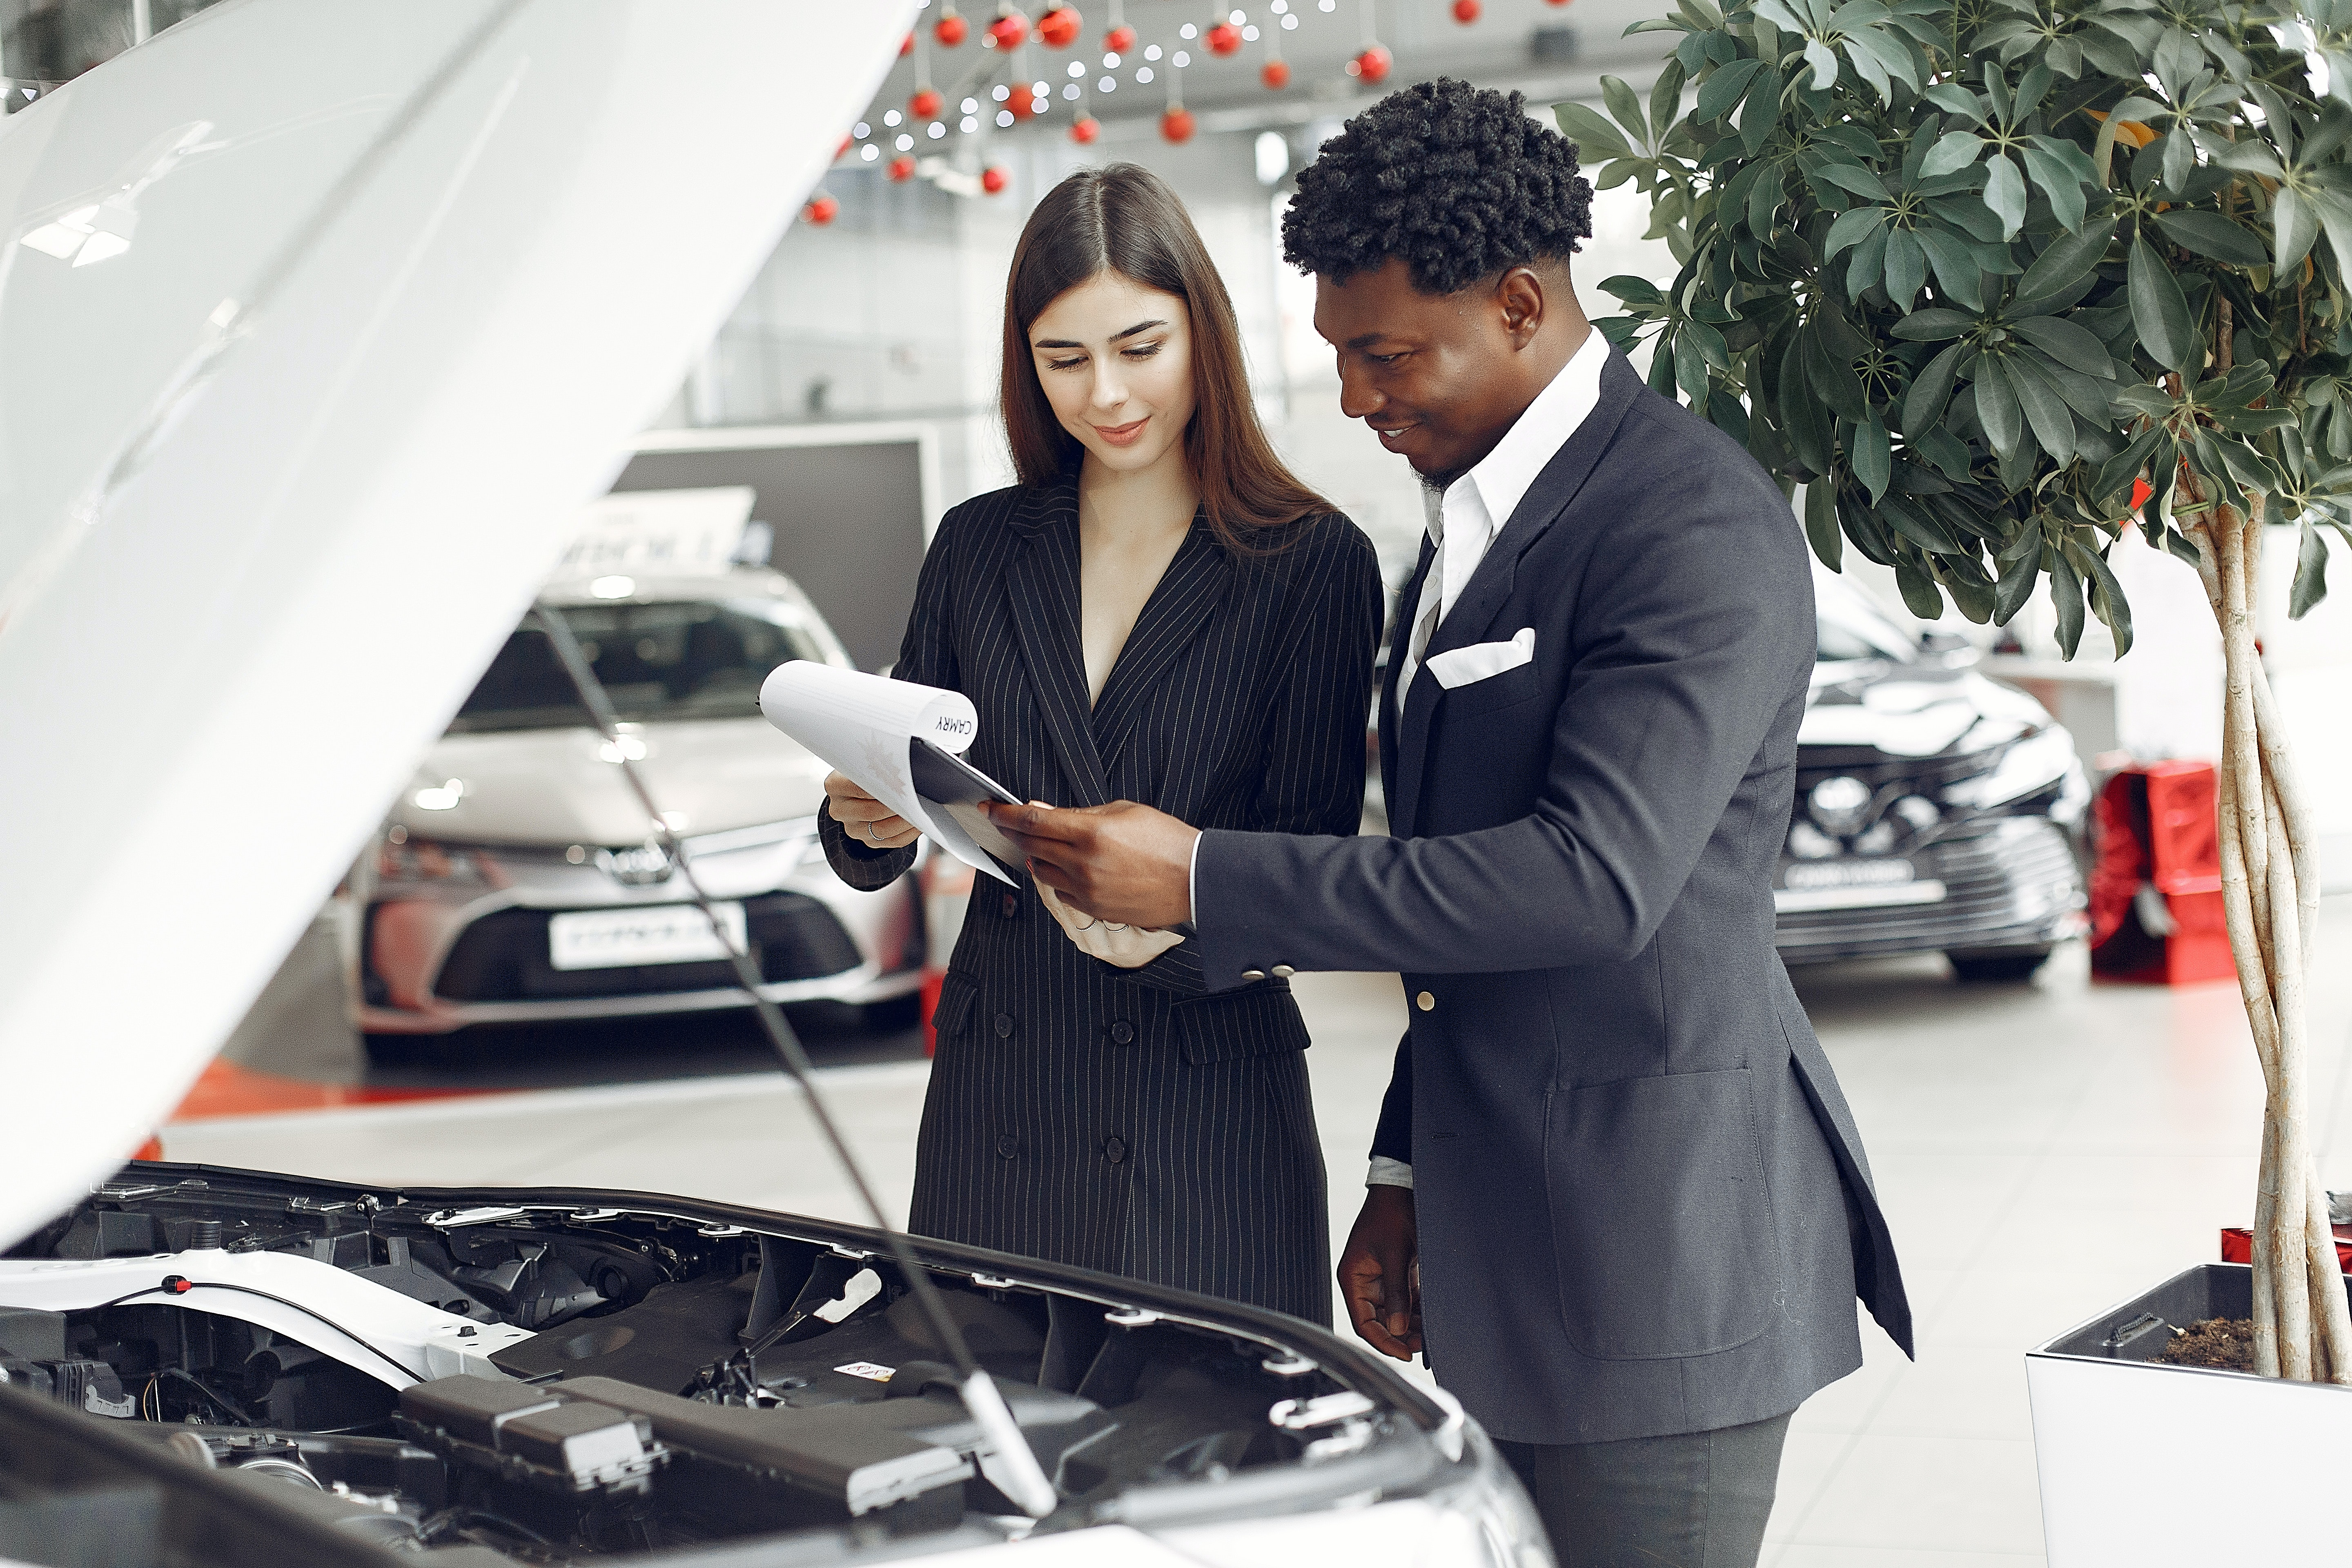 2 people discussing final checks standing in front of a car with the bonnet open